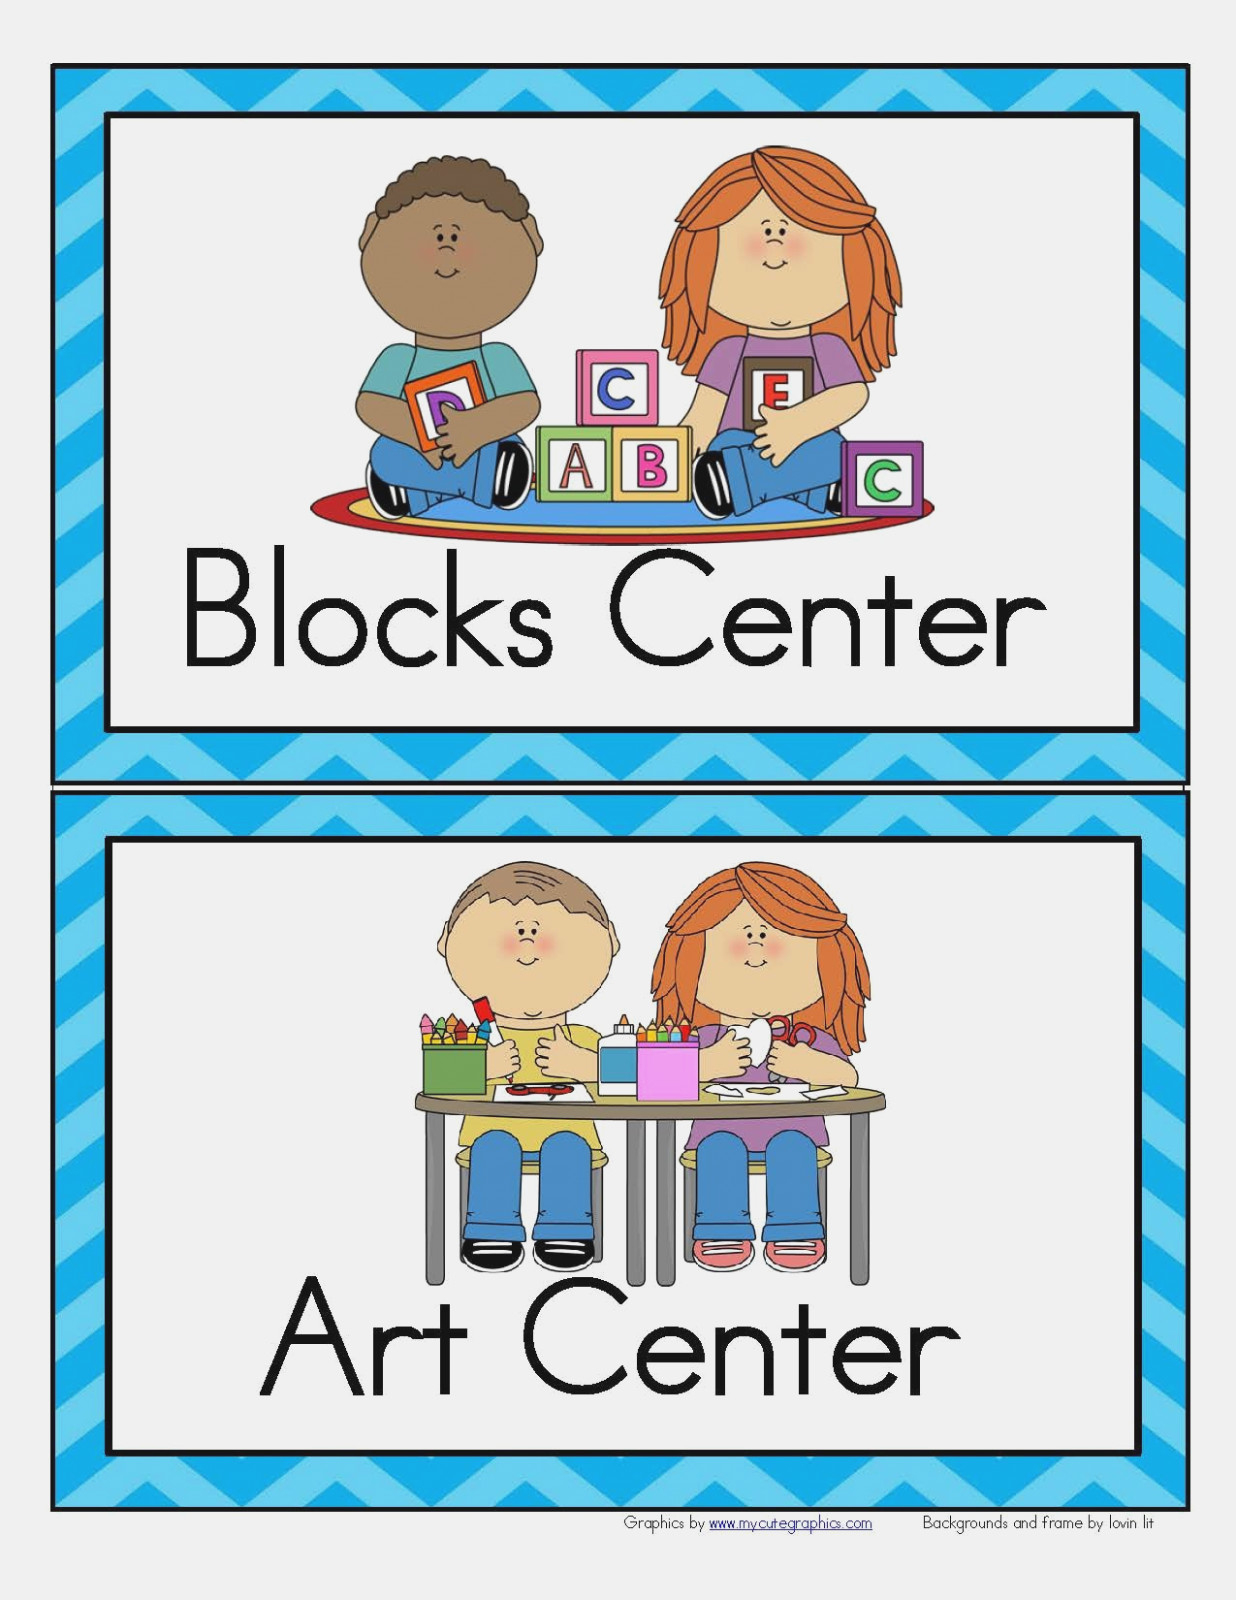 photograph regarding Free Printable Classroom Labels for Preschoolers referred to as No cost Printable Clroom Labels For Preschoolers Absolutely free